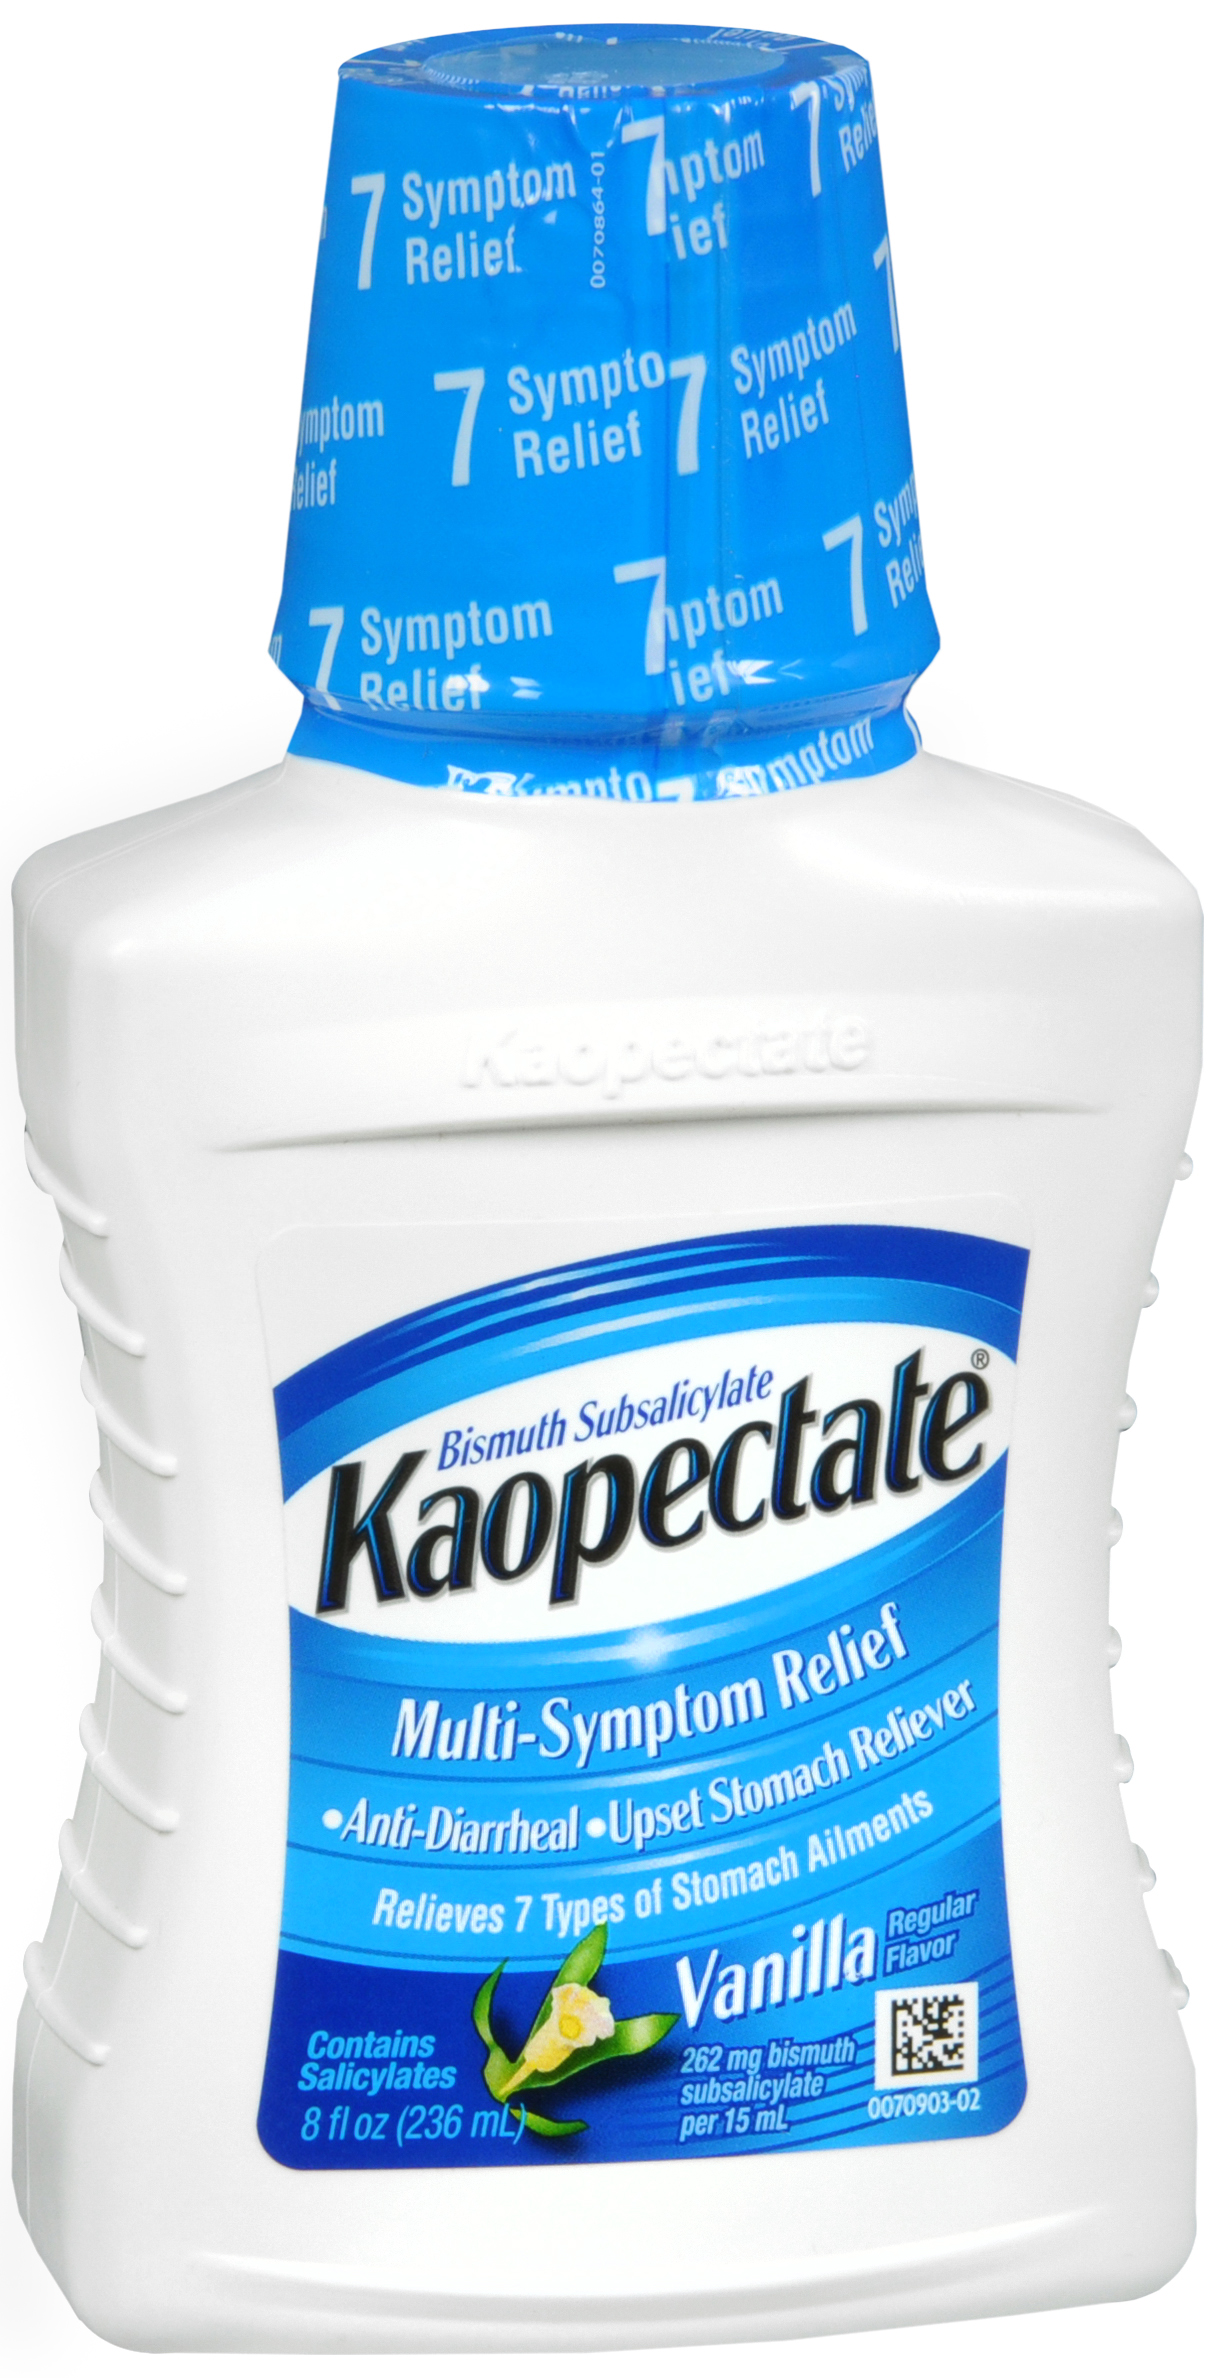 Swell Chattem Laboratories Kaopectate Liquid Regular Flavor 8Oz At Ibusinesslaw Wood Chair Design Ideas Ibusinesslaworg